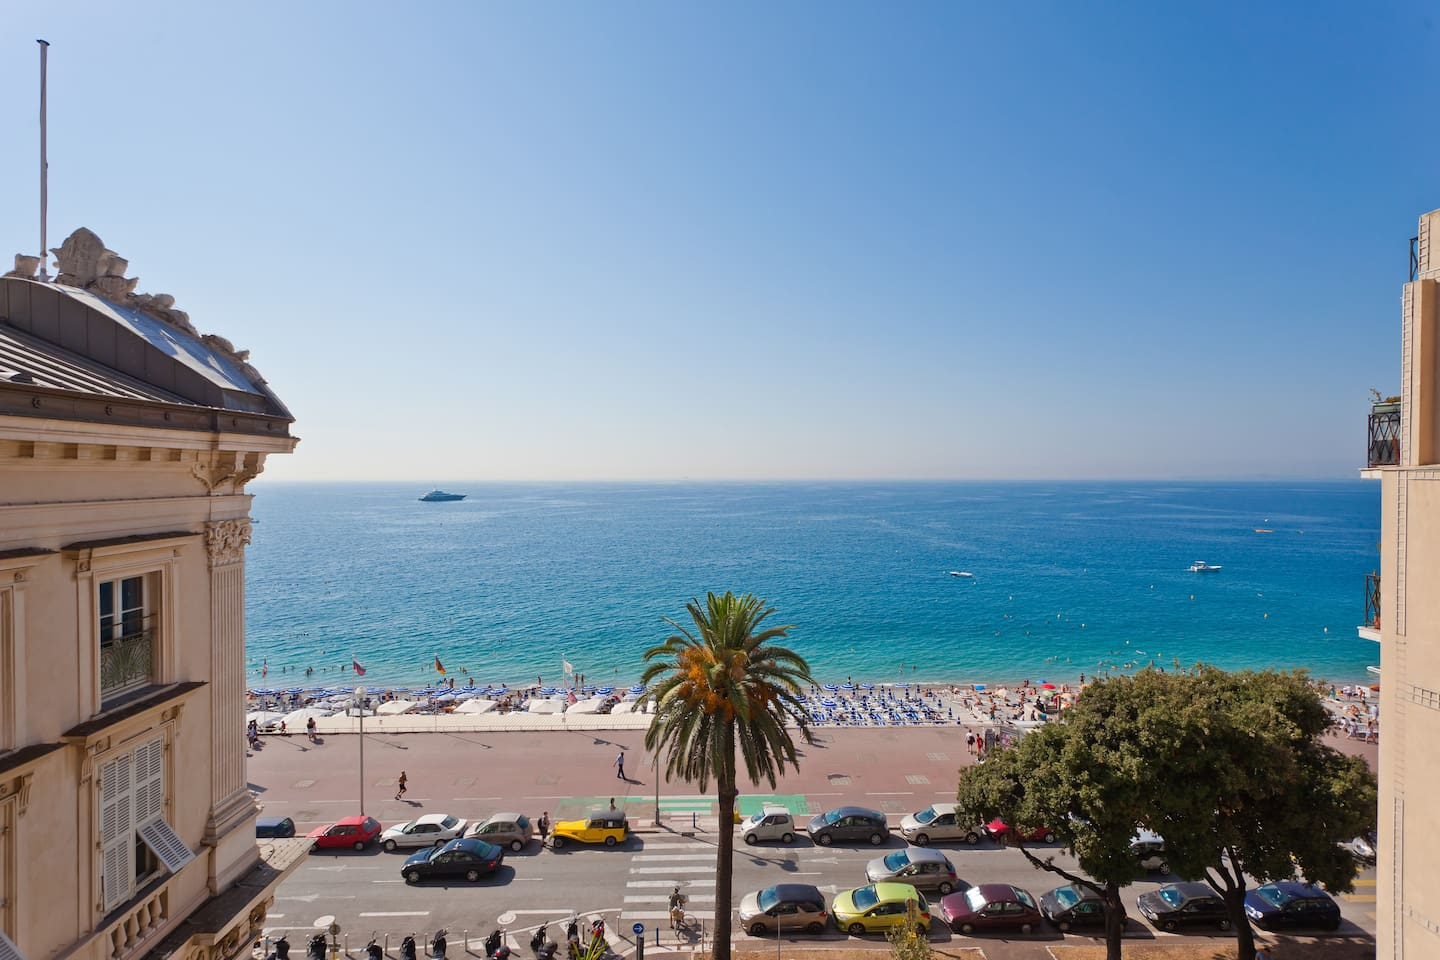 View from the salon. Turn left and you see the Opera House. Turn right and at night you can see the Antibes lighthouse.